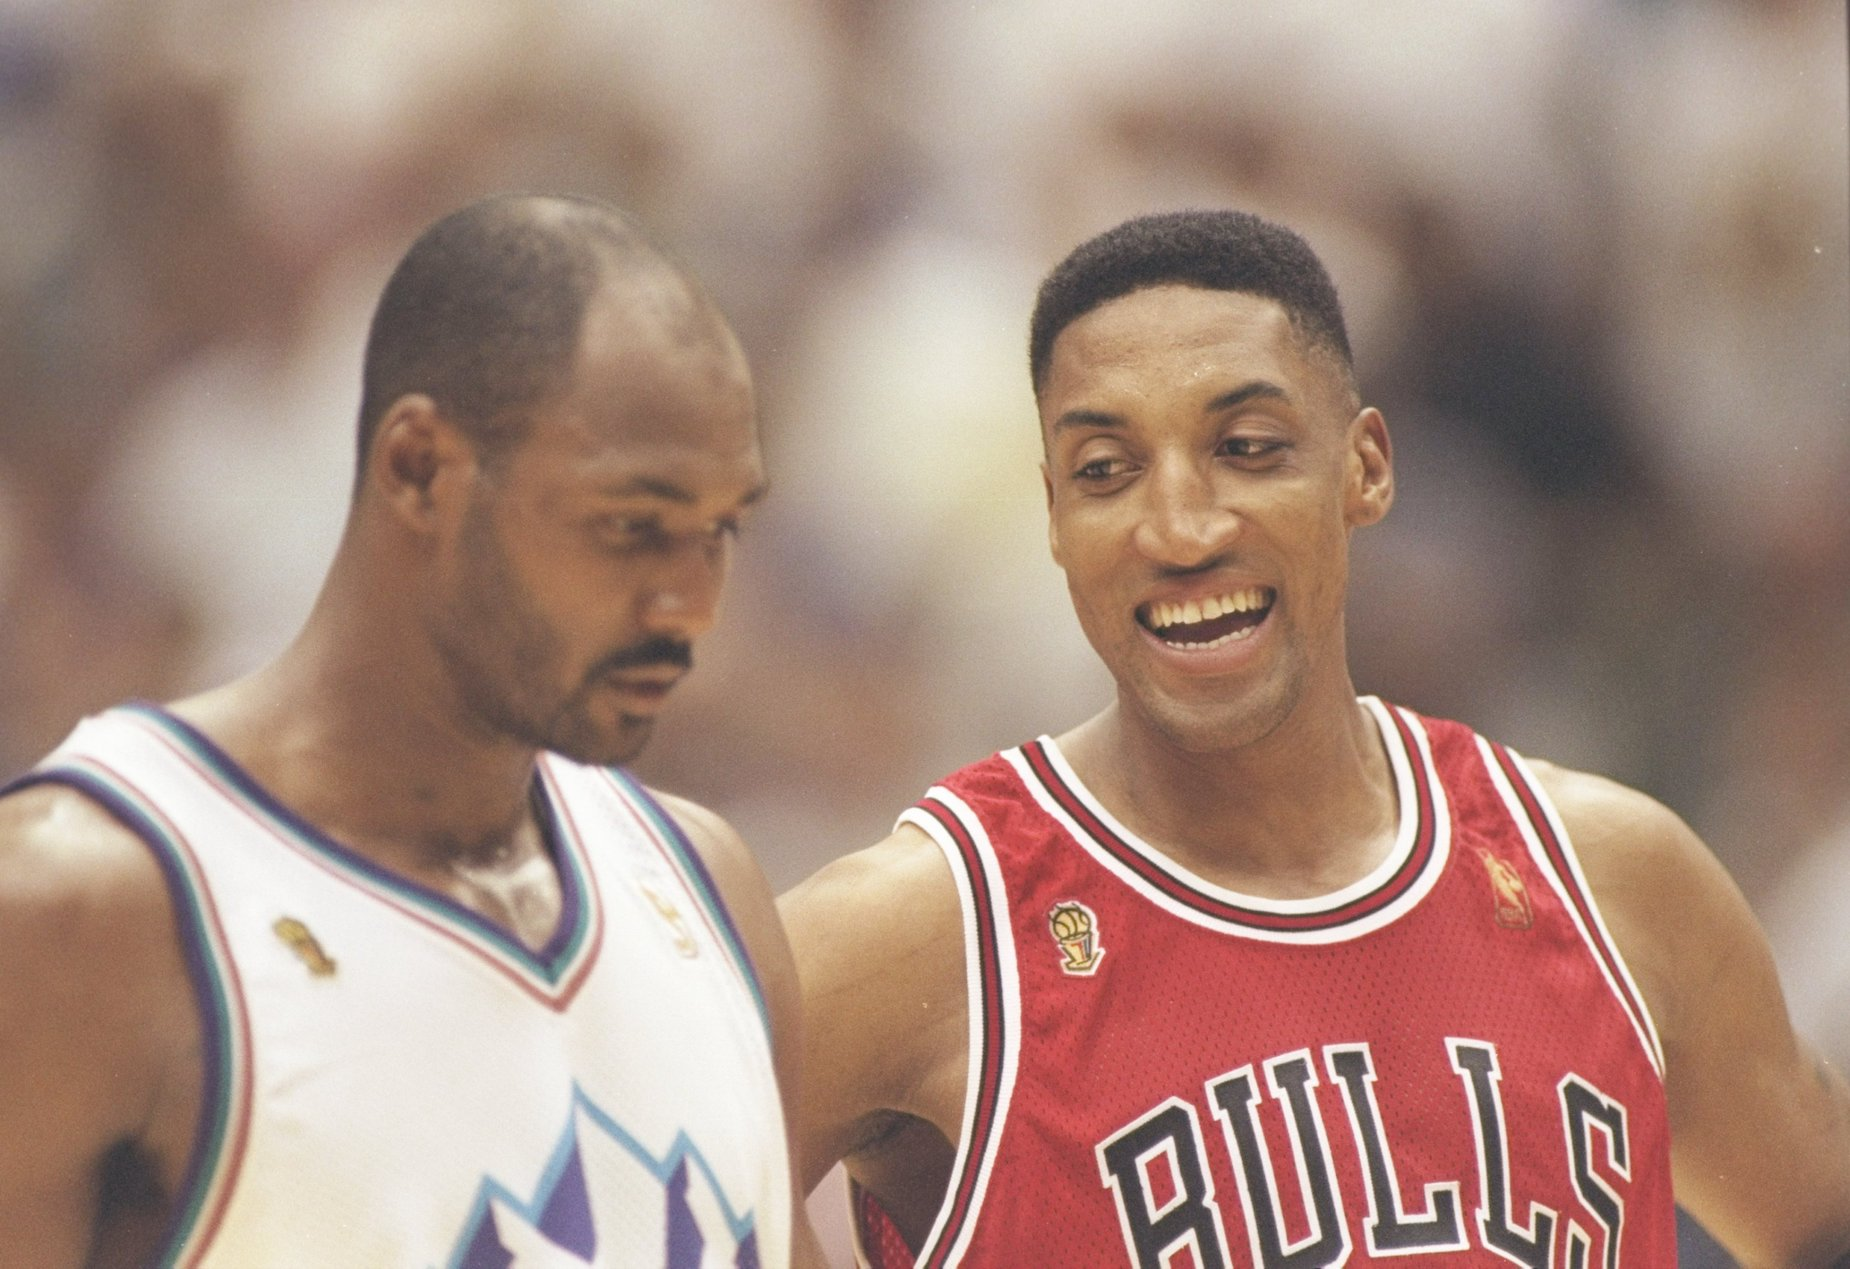 During his time with the Utah Jazz, Karl Malone had some memorable duels with Scottie Pippen and Michael Jordan.